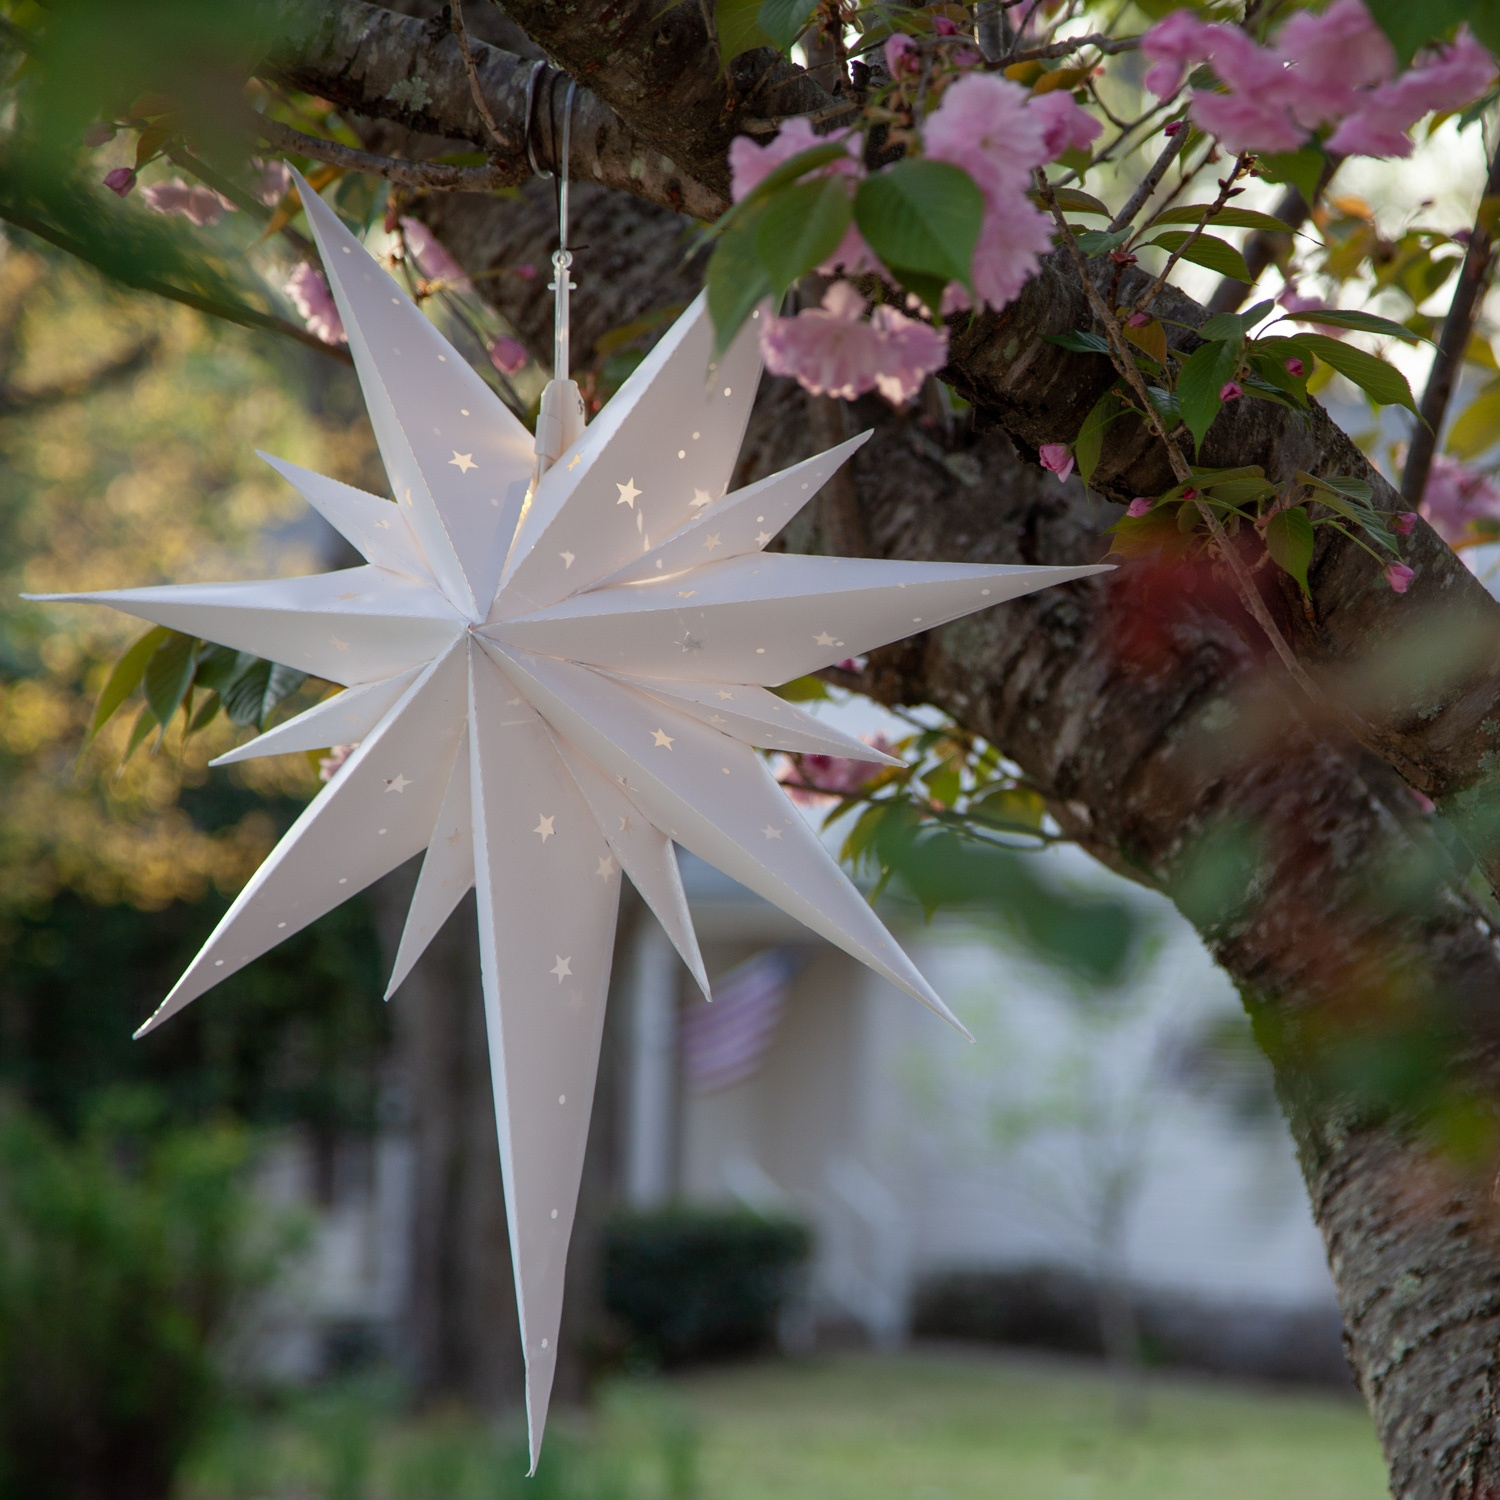 Star Light Decorations Hanging in a Tree